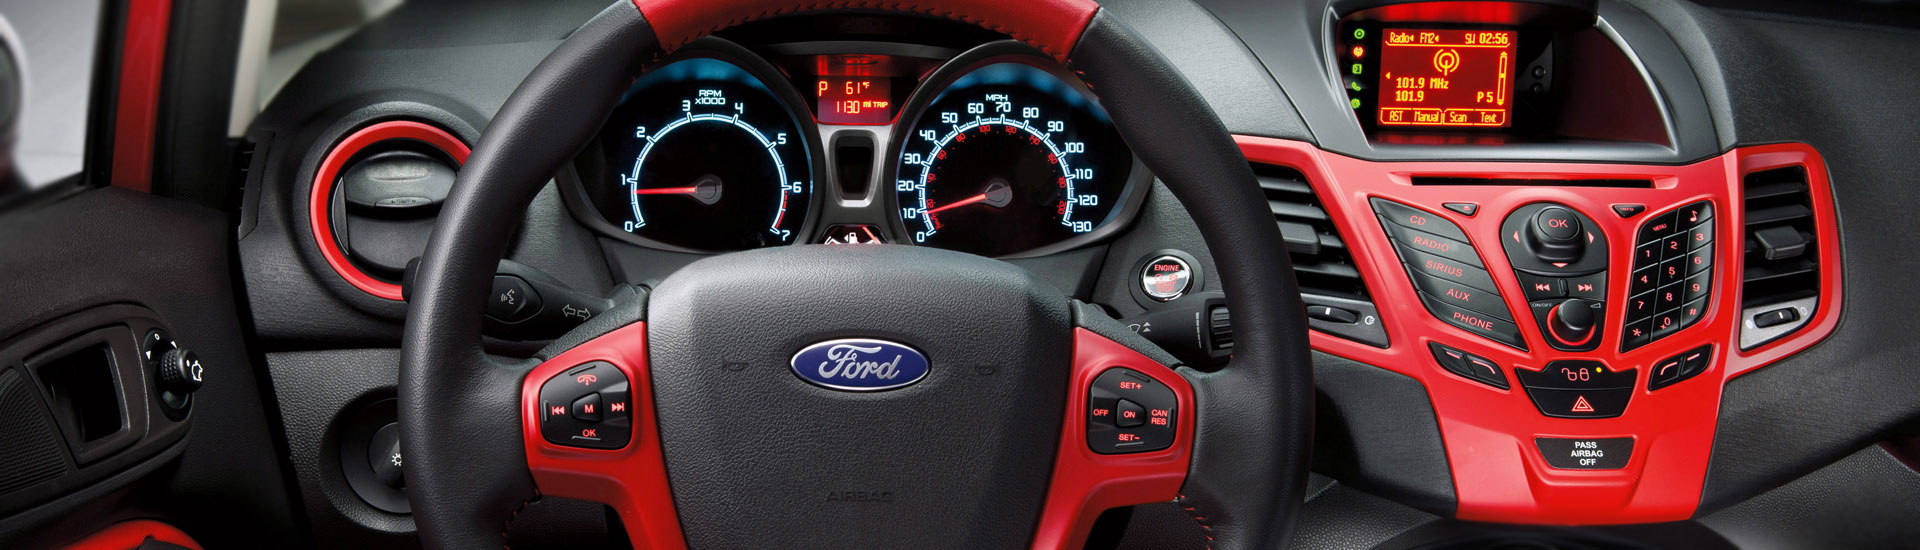 2011 Ford F-250 Custom Dash Kits